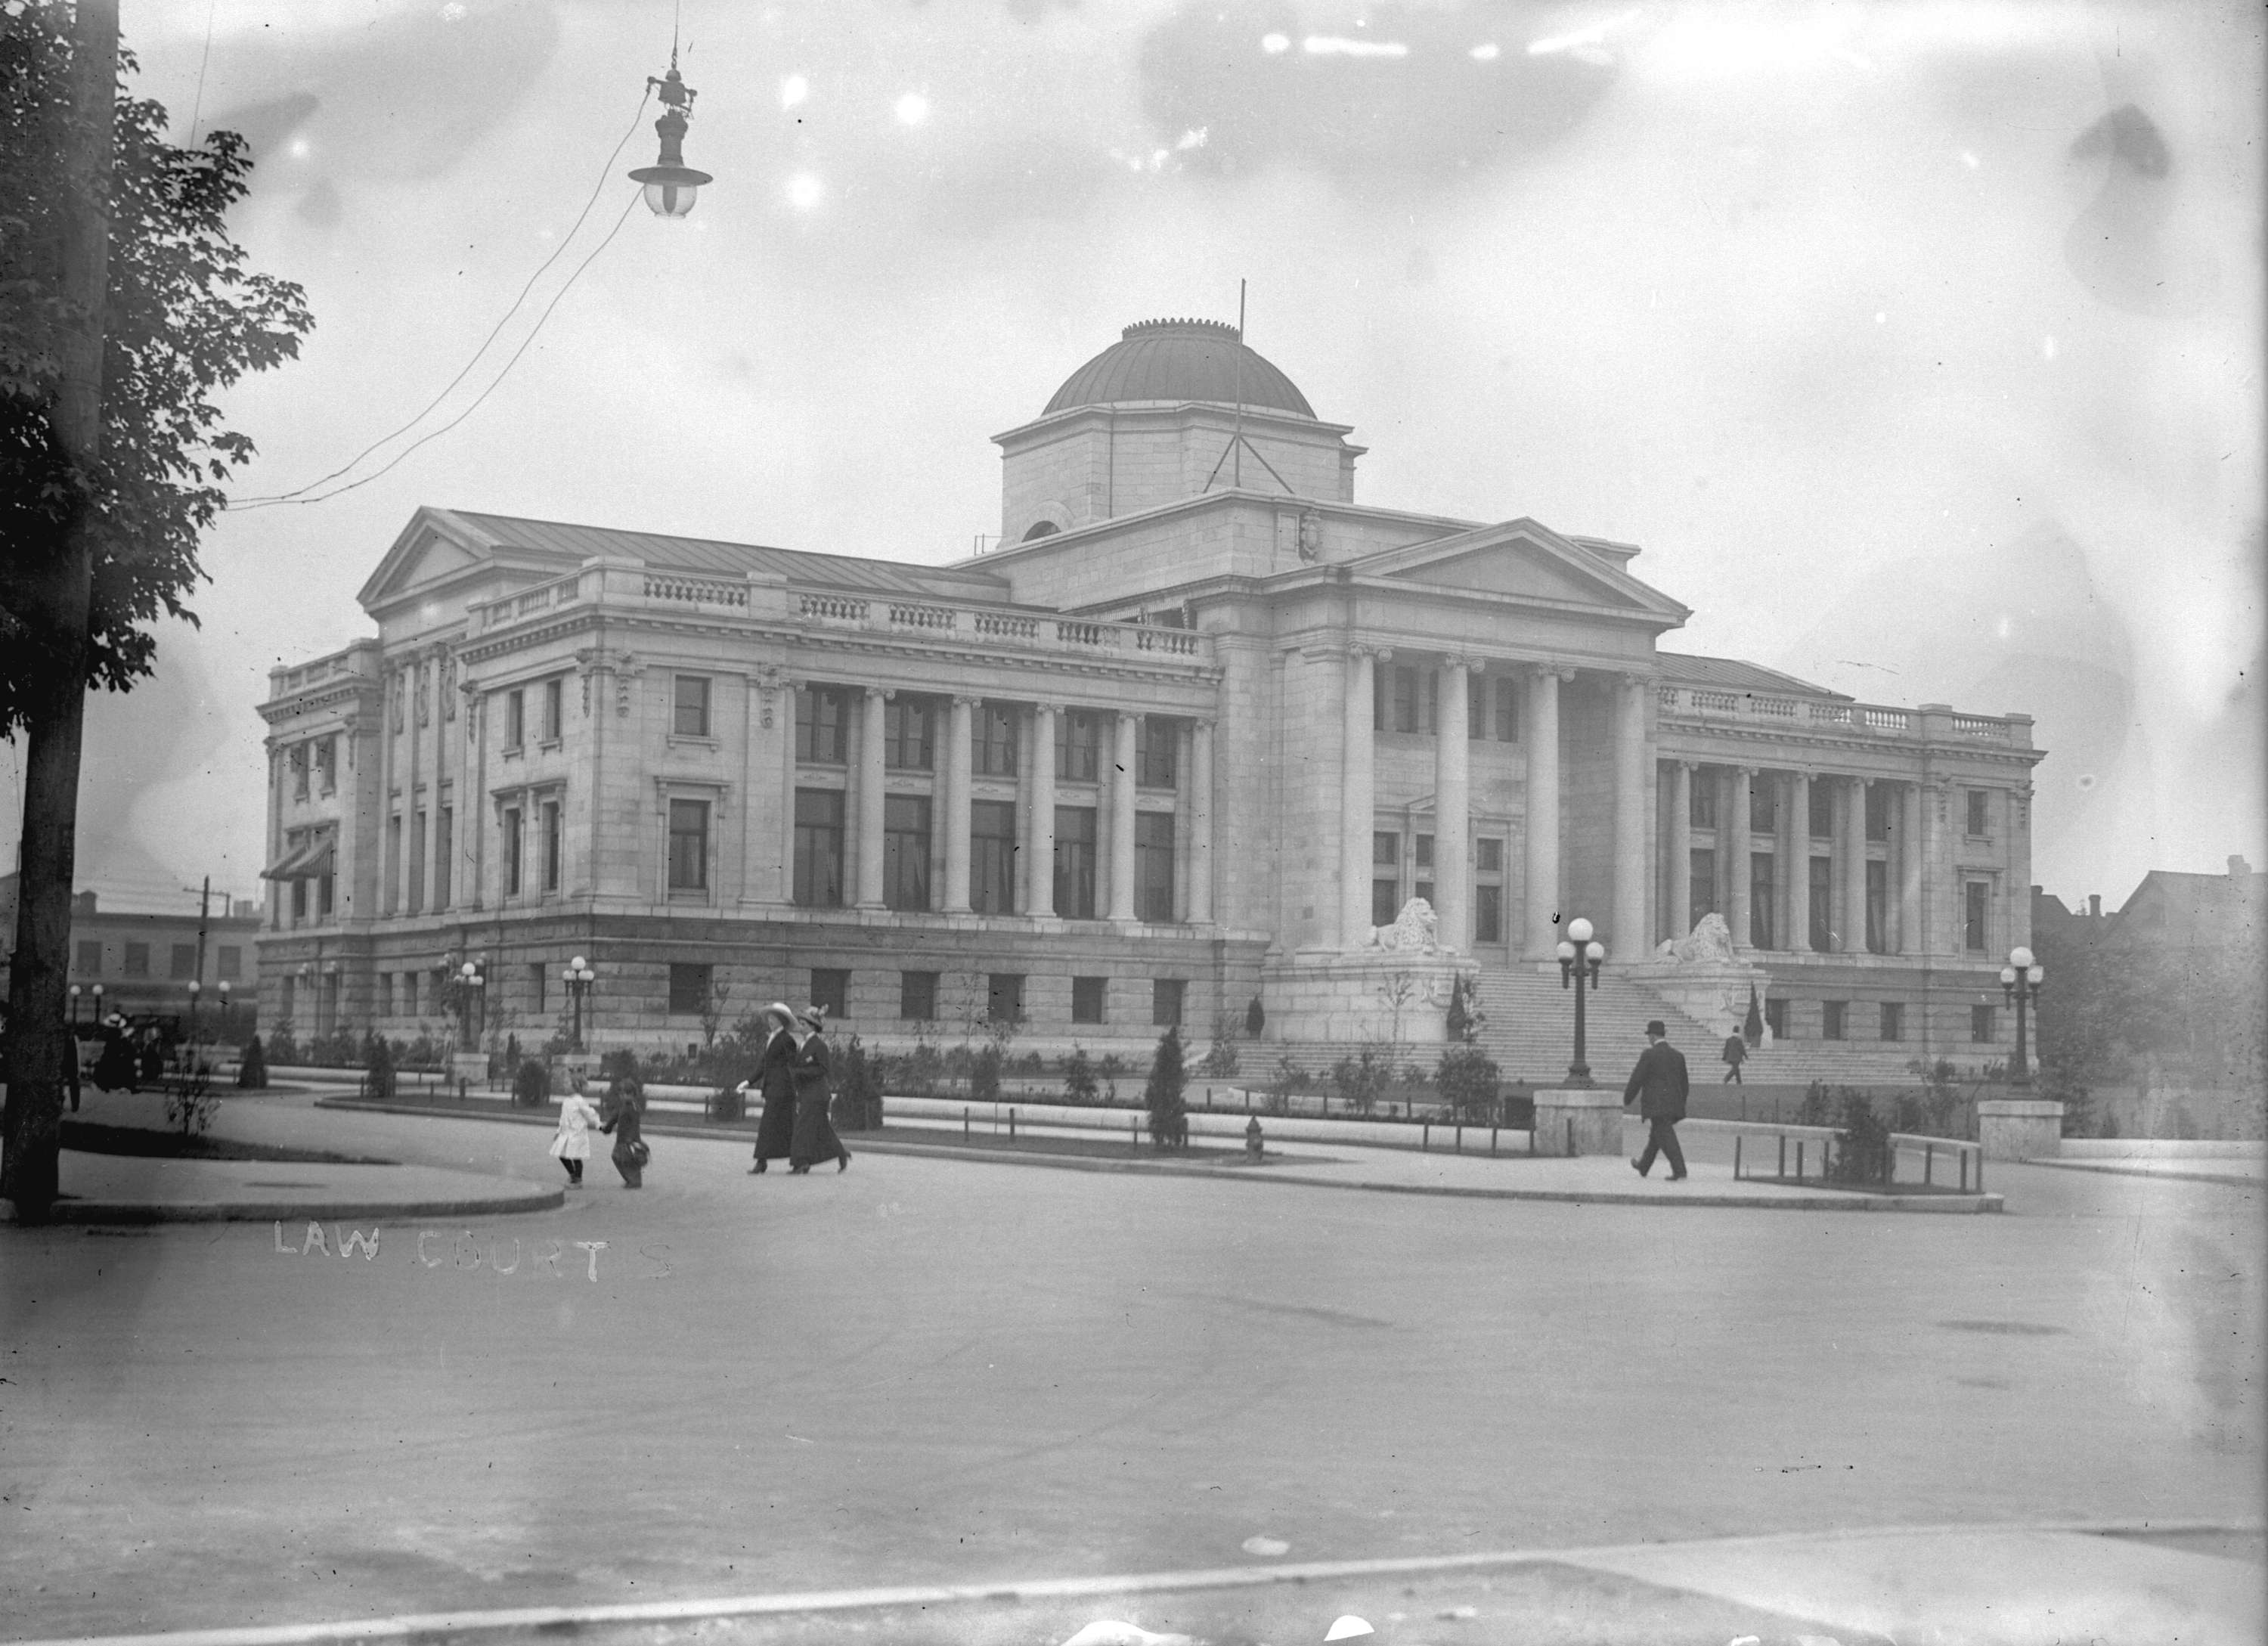 Vancouver Law Court in the 1910s (Vancouver Archives)